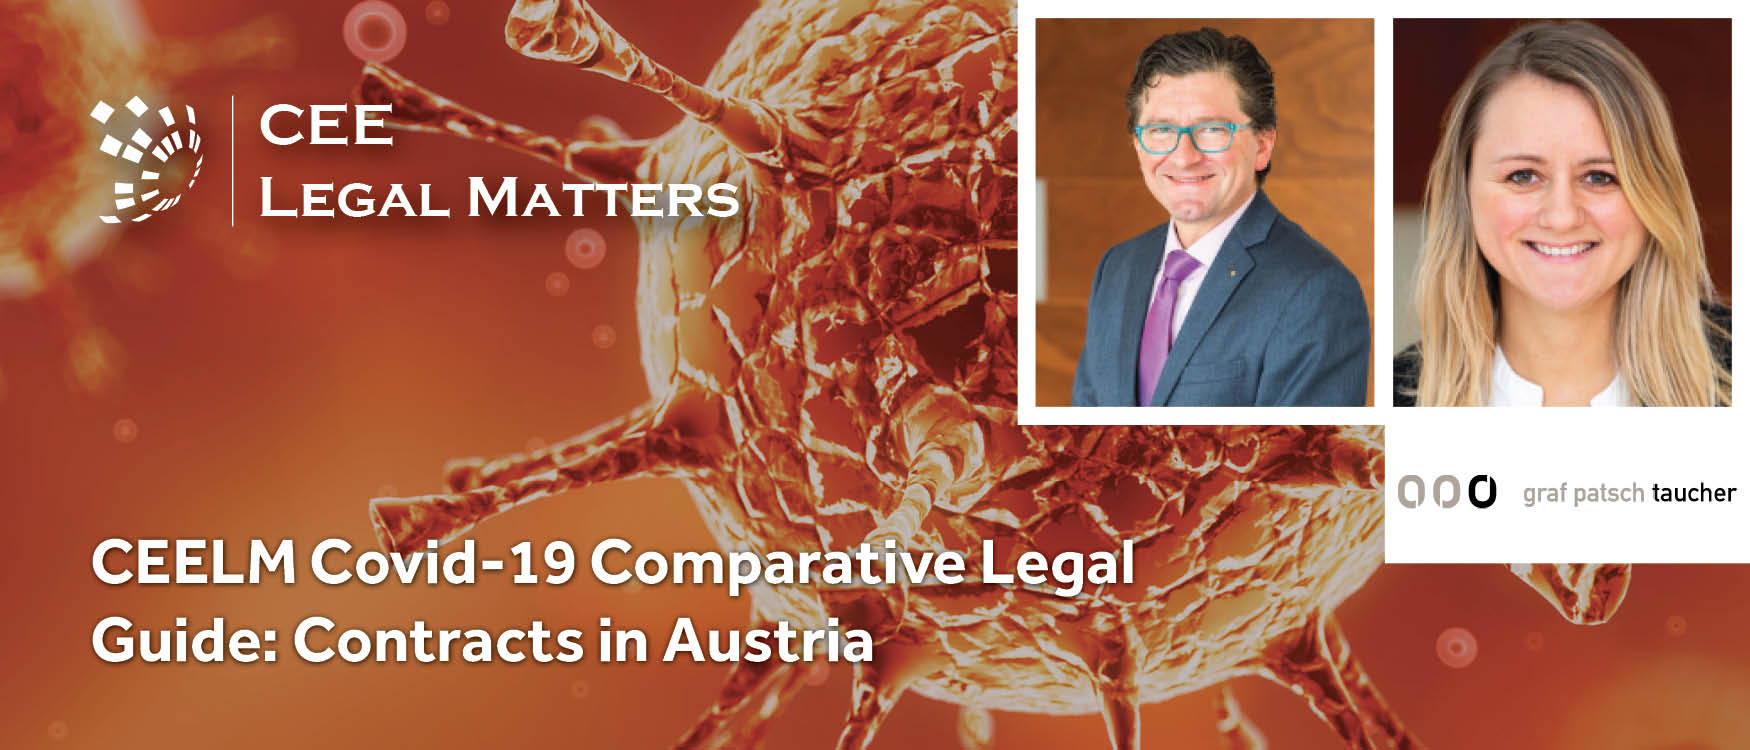 CEELM Covid-19 Comparative Legal Guide: Contracts in Austria